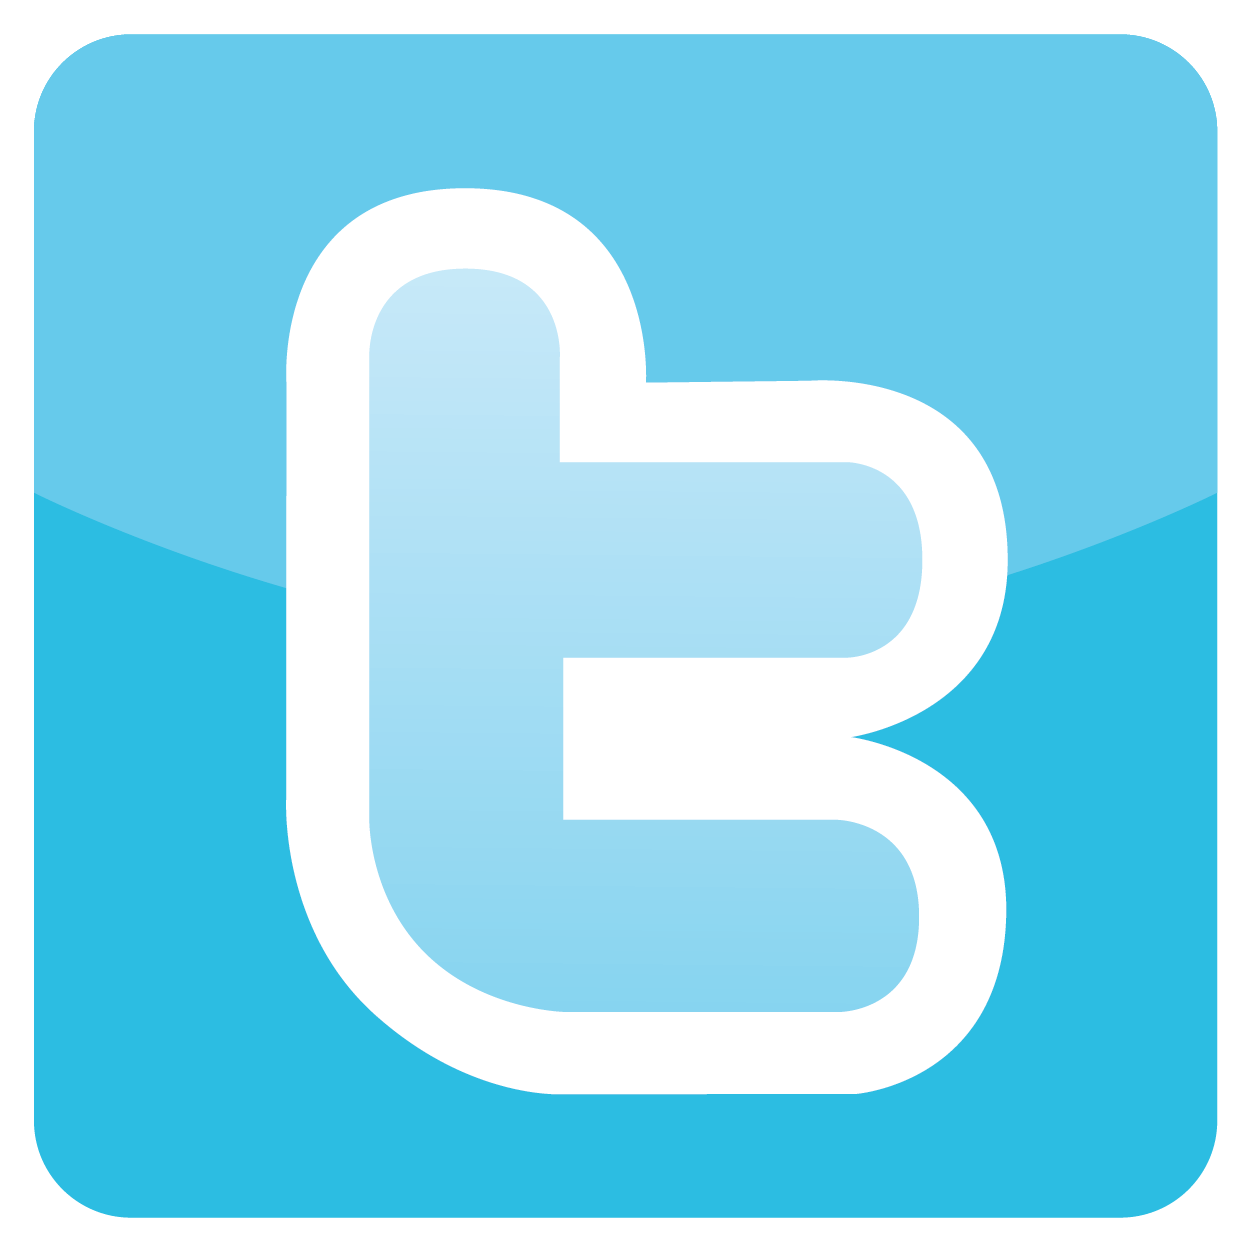 Official twitter clipart picture royalty free download Official twitter clipart 2015 - ClipartFest picture royalty free download